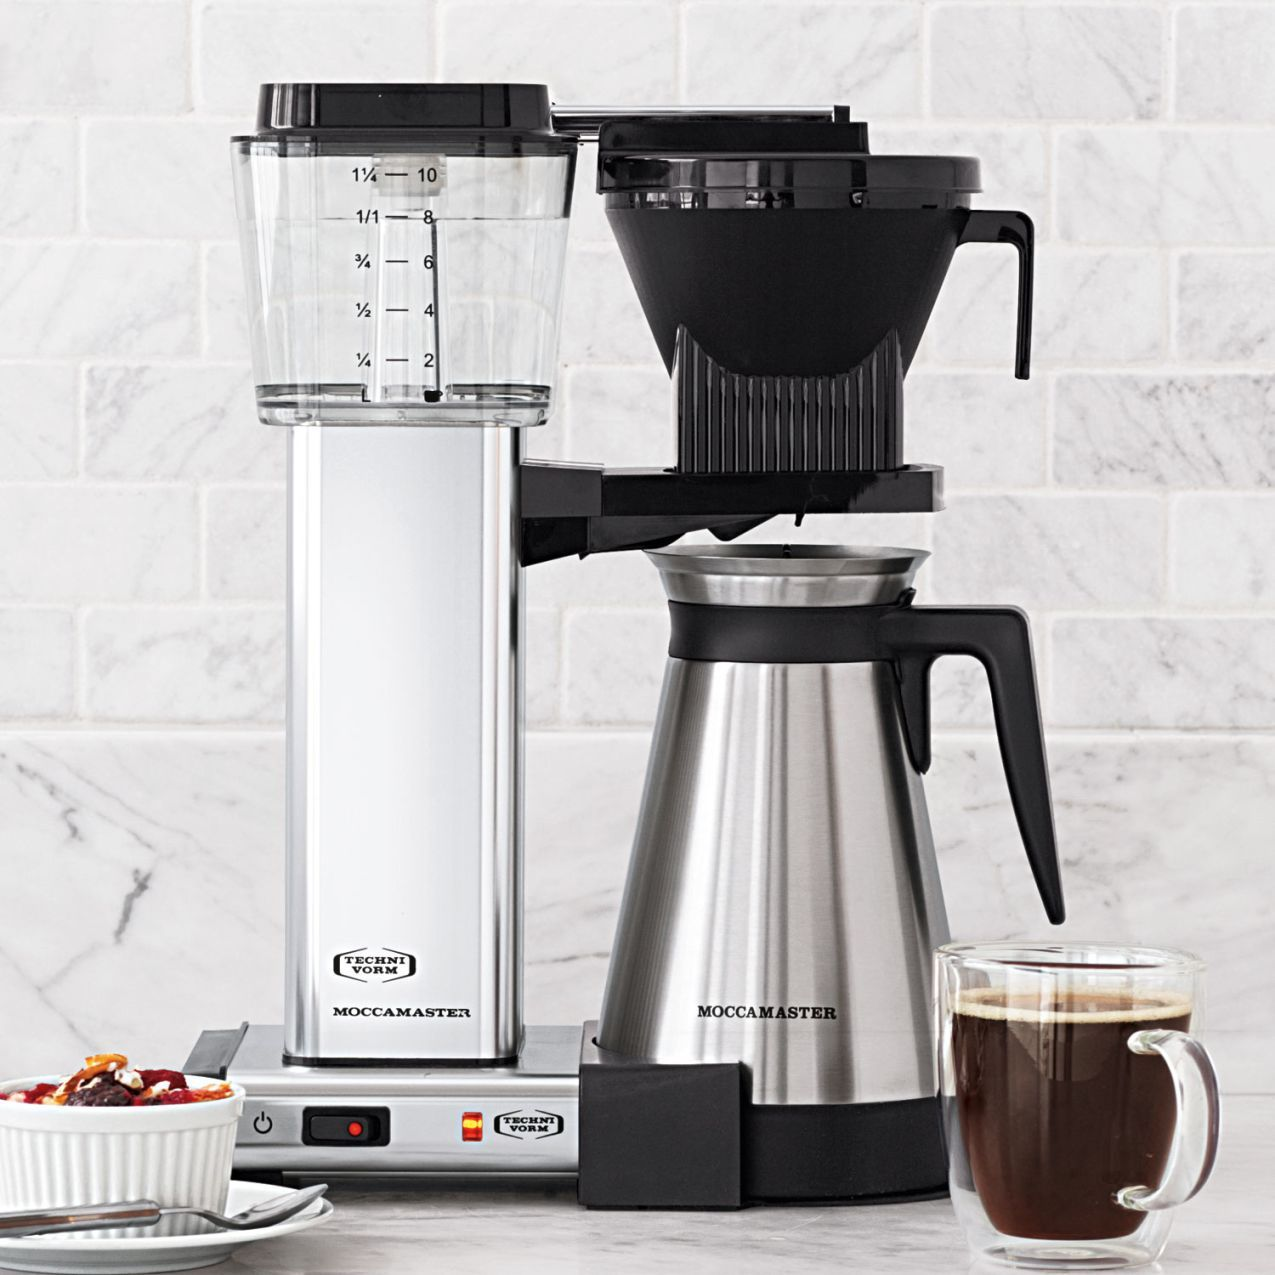 The best coffee makers 2017 Best coffee maker